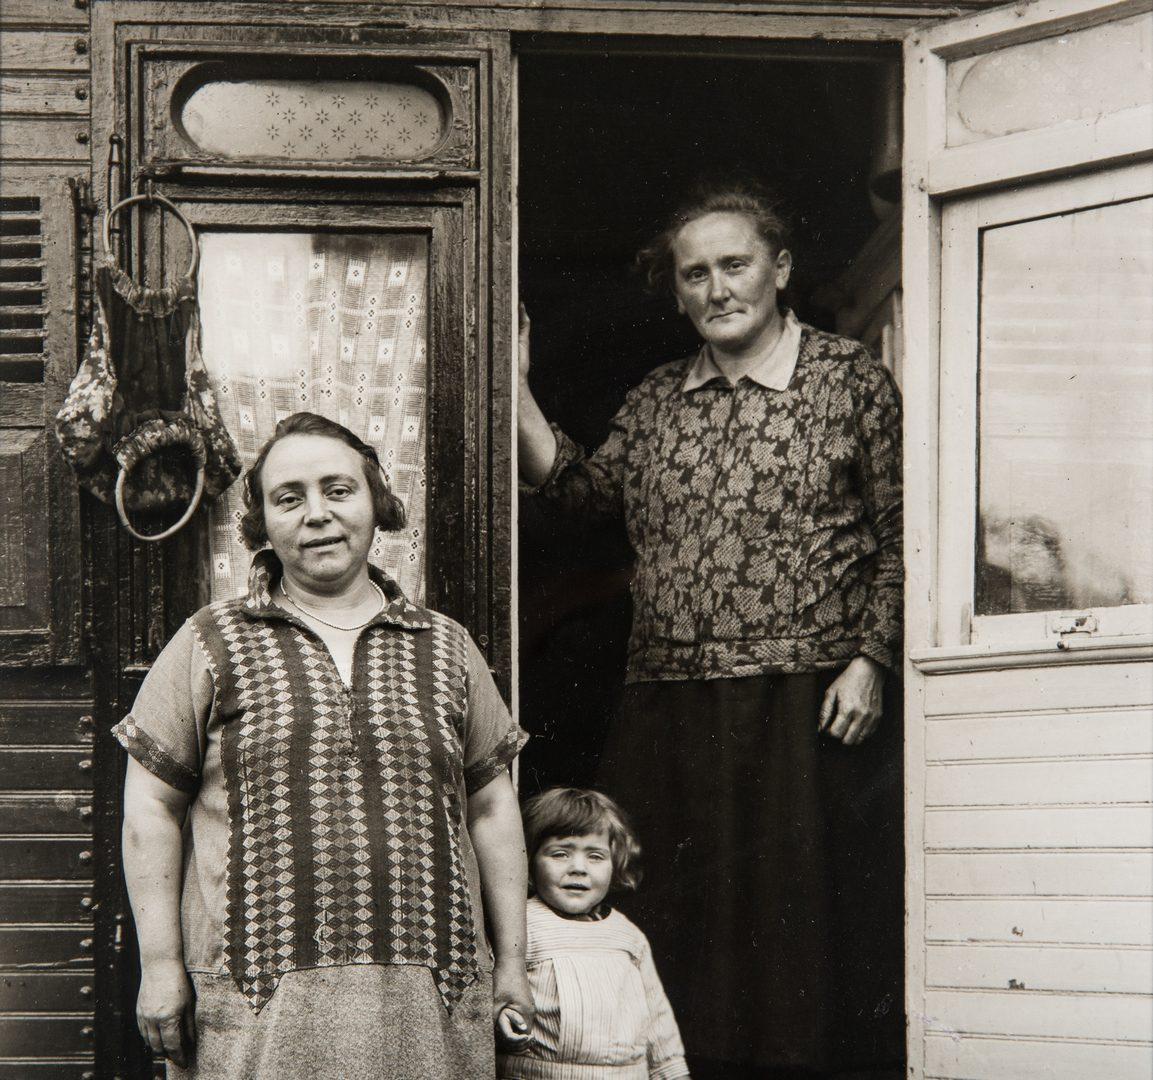 Lot 550: 2 August Sander Gelatin Silver Prints: Circus, 3 Generations and Small Town People